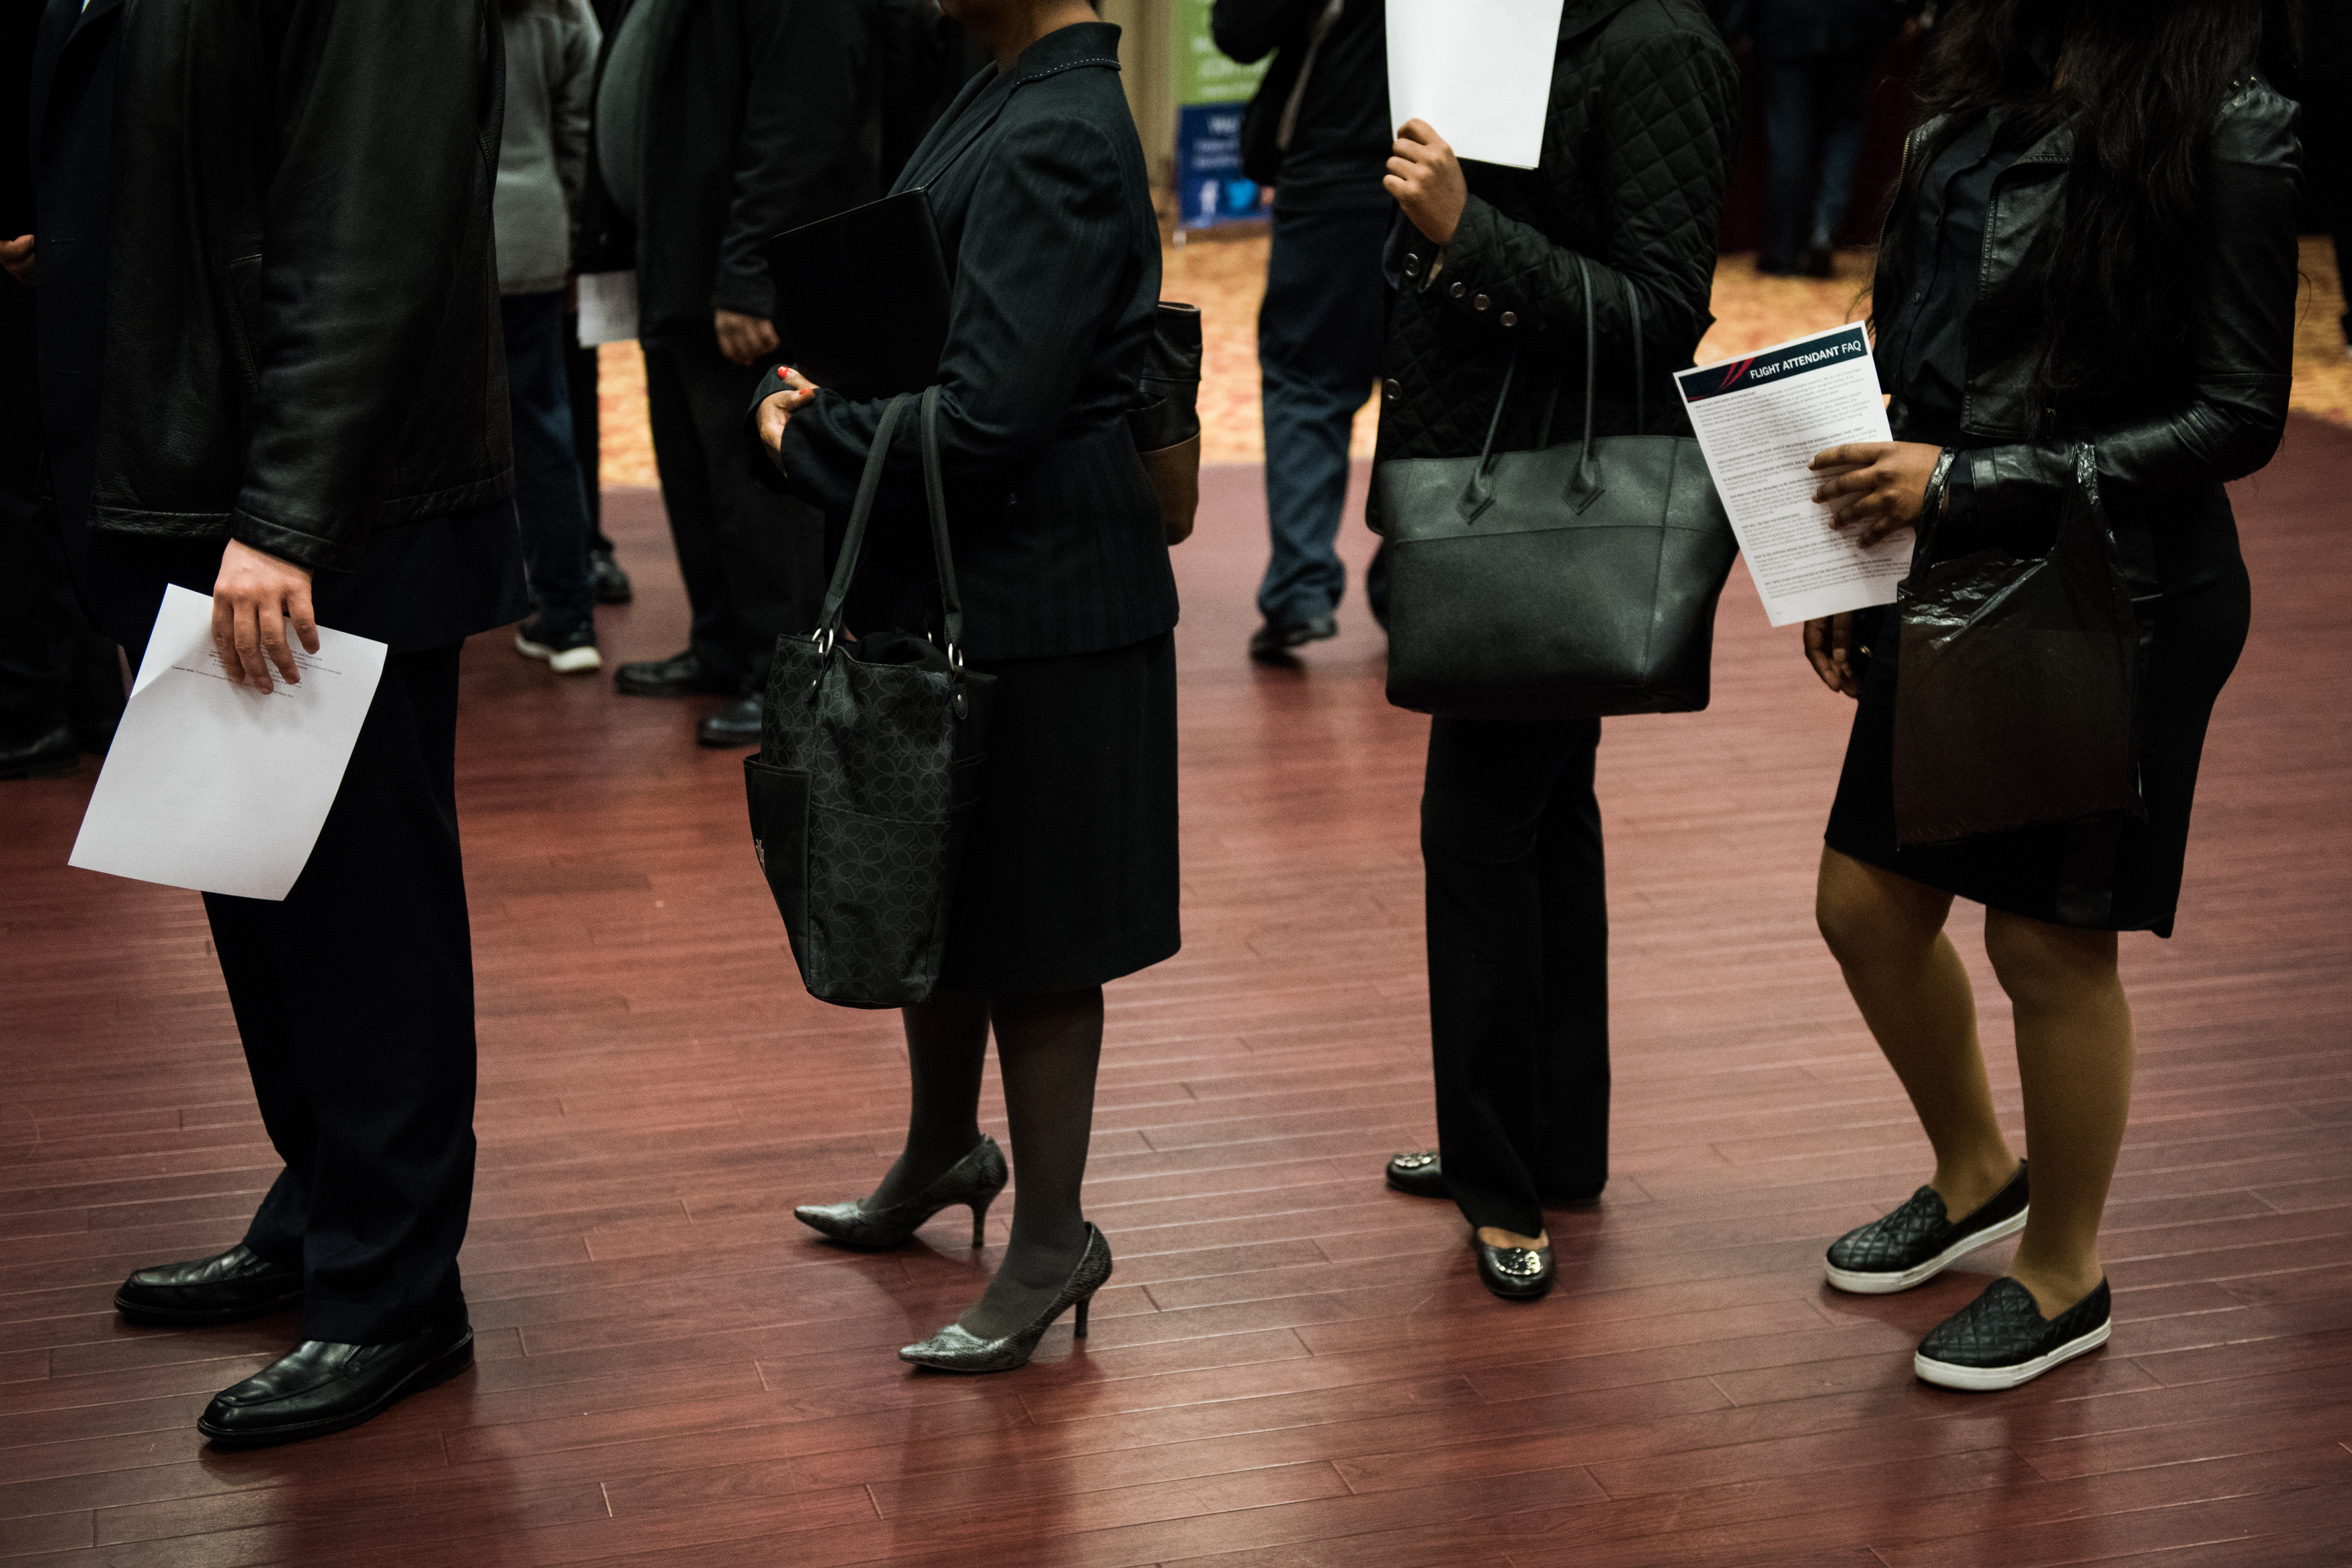 Inside A Choice Career Fair As Jobless Claims in U.S. Declined Ahead of Presidential Election